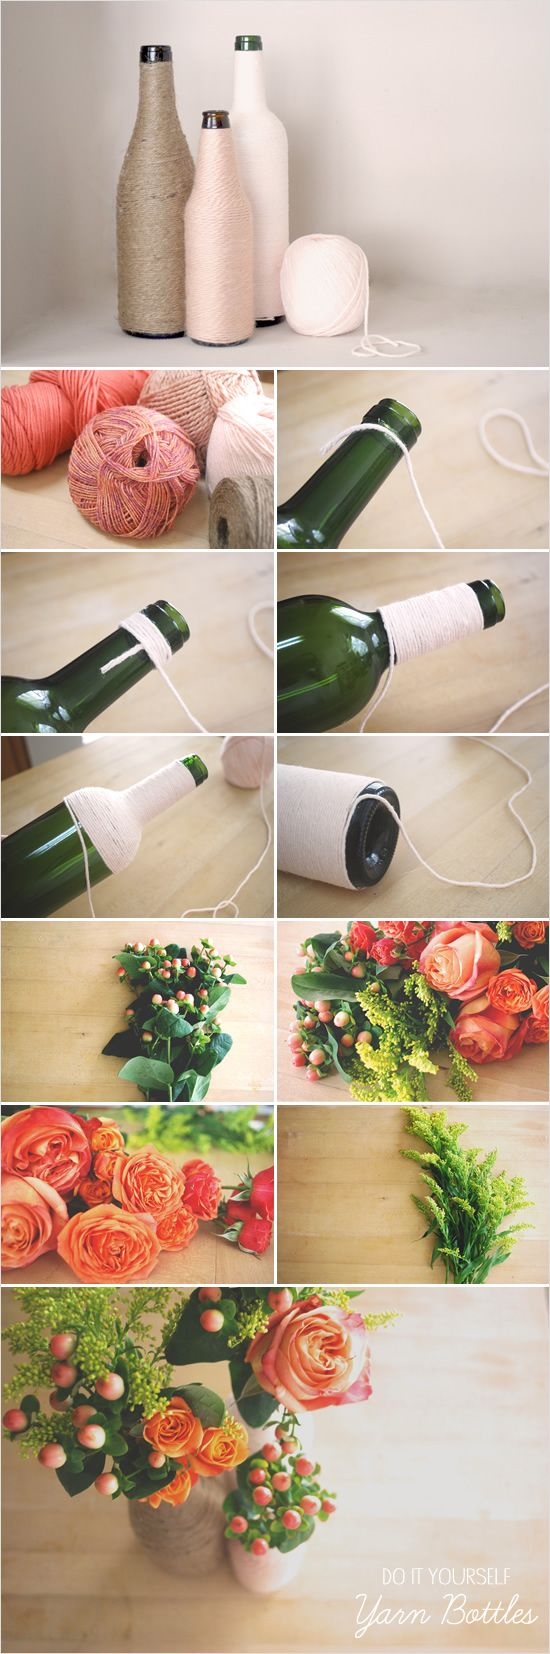 how to make yarn bottles #diy #crafts